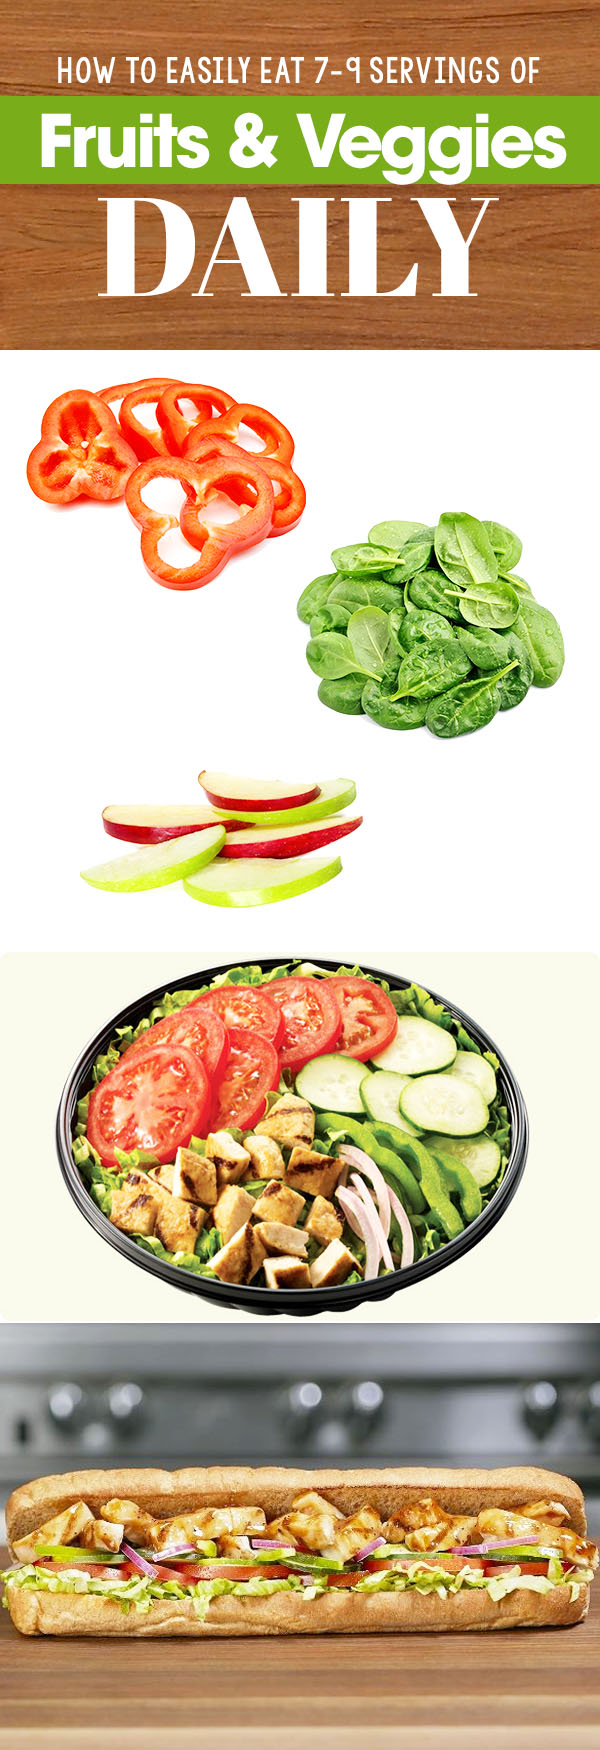 how to eat vegetables everyday